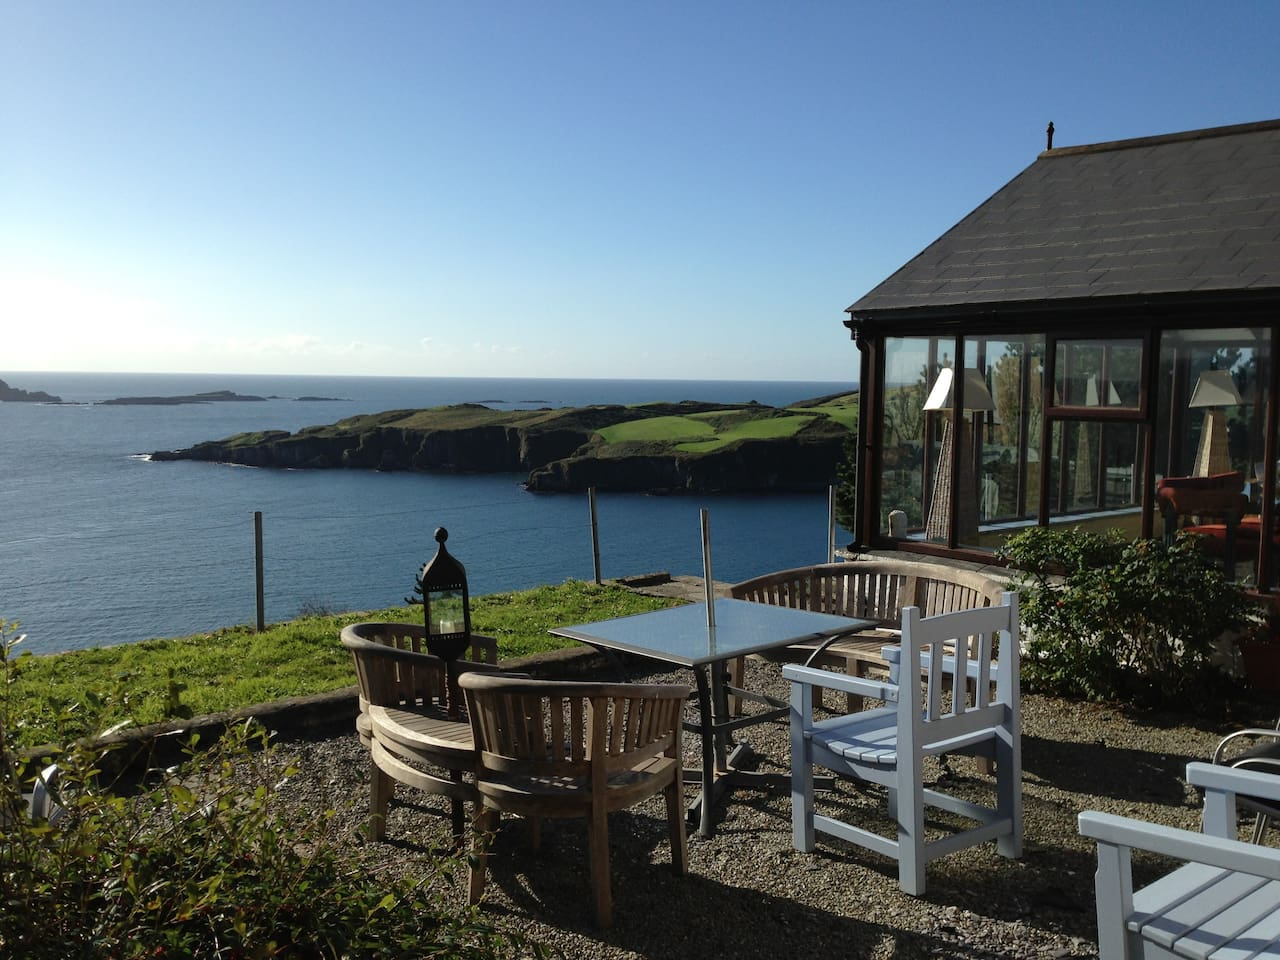 Stunning location on the Wild Atlantic Way - Route 5, West Cork